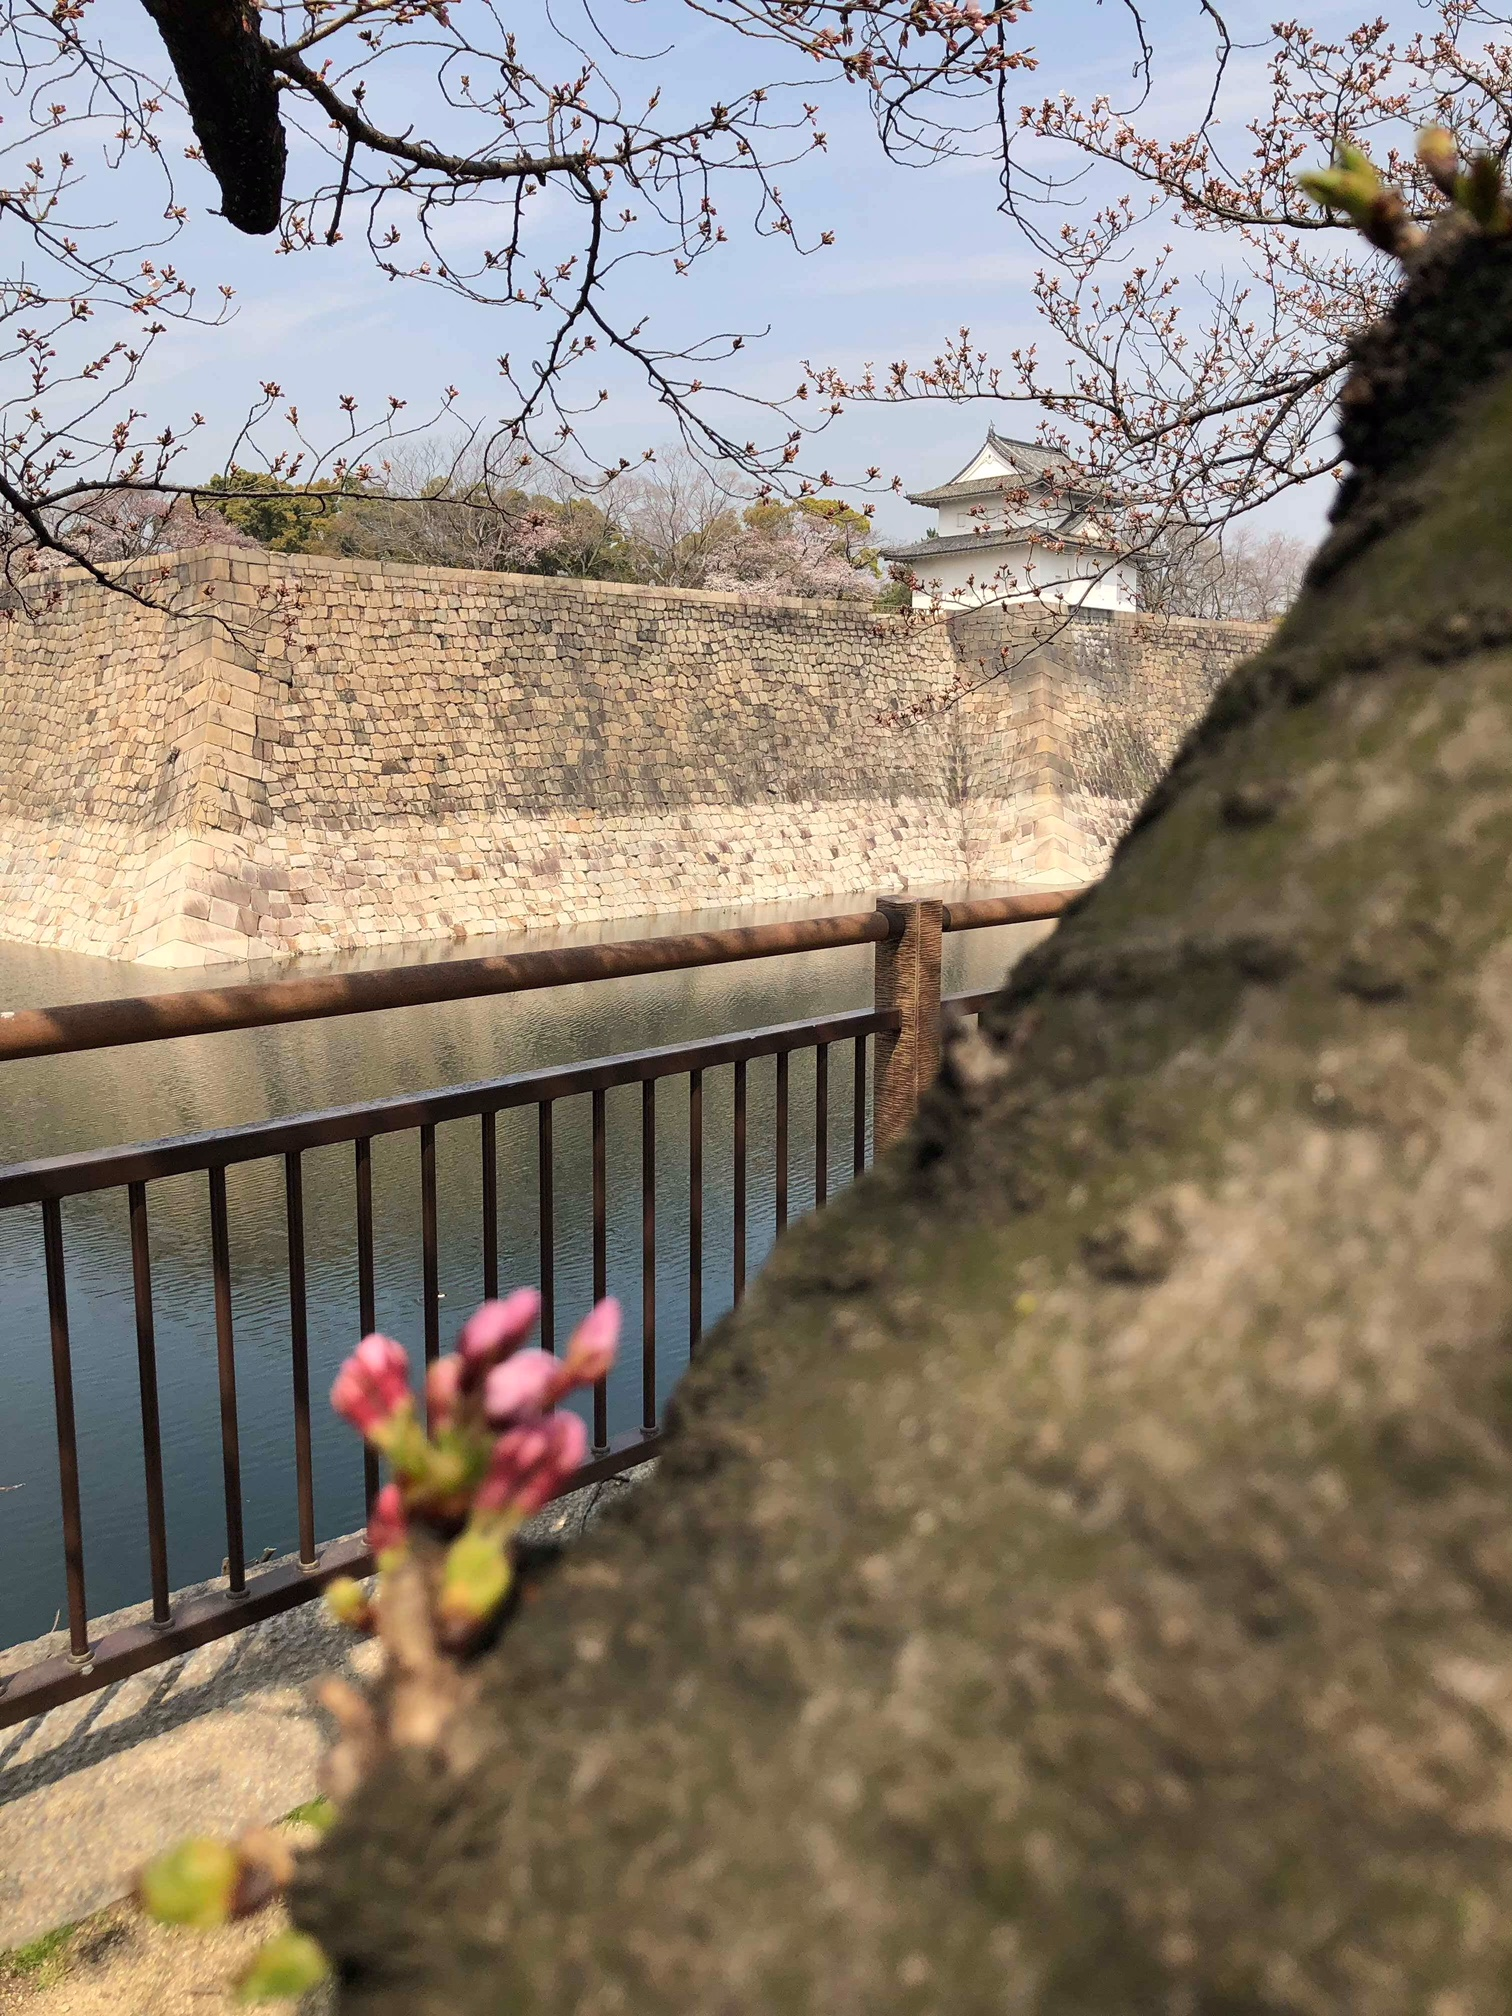 """""""Myfavorite place was the Osaka castle because of its sheer scale and outstanding views."""" - Yao"""